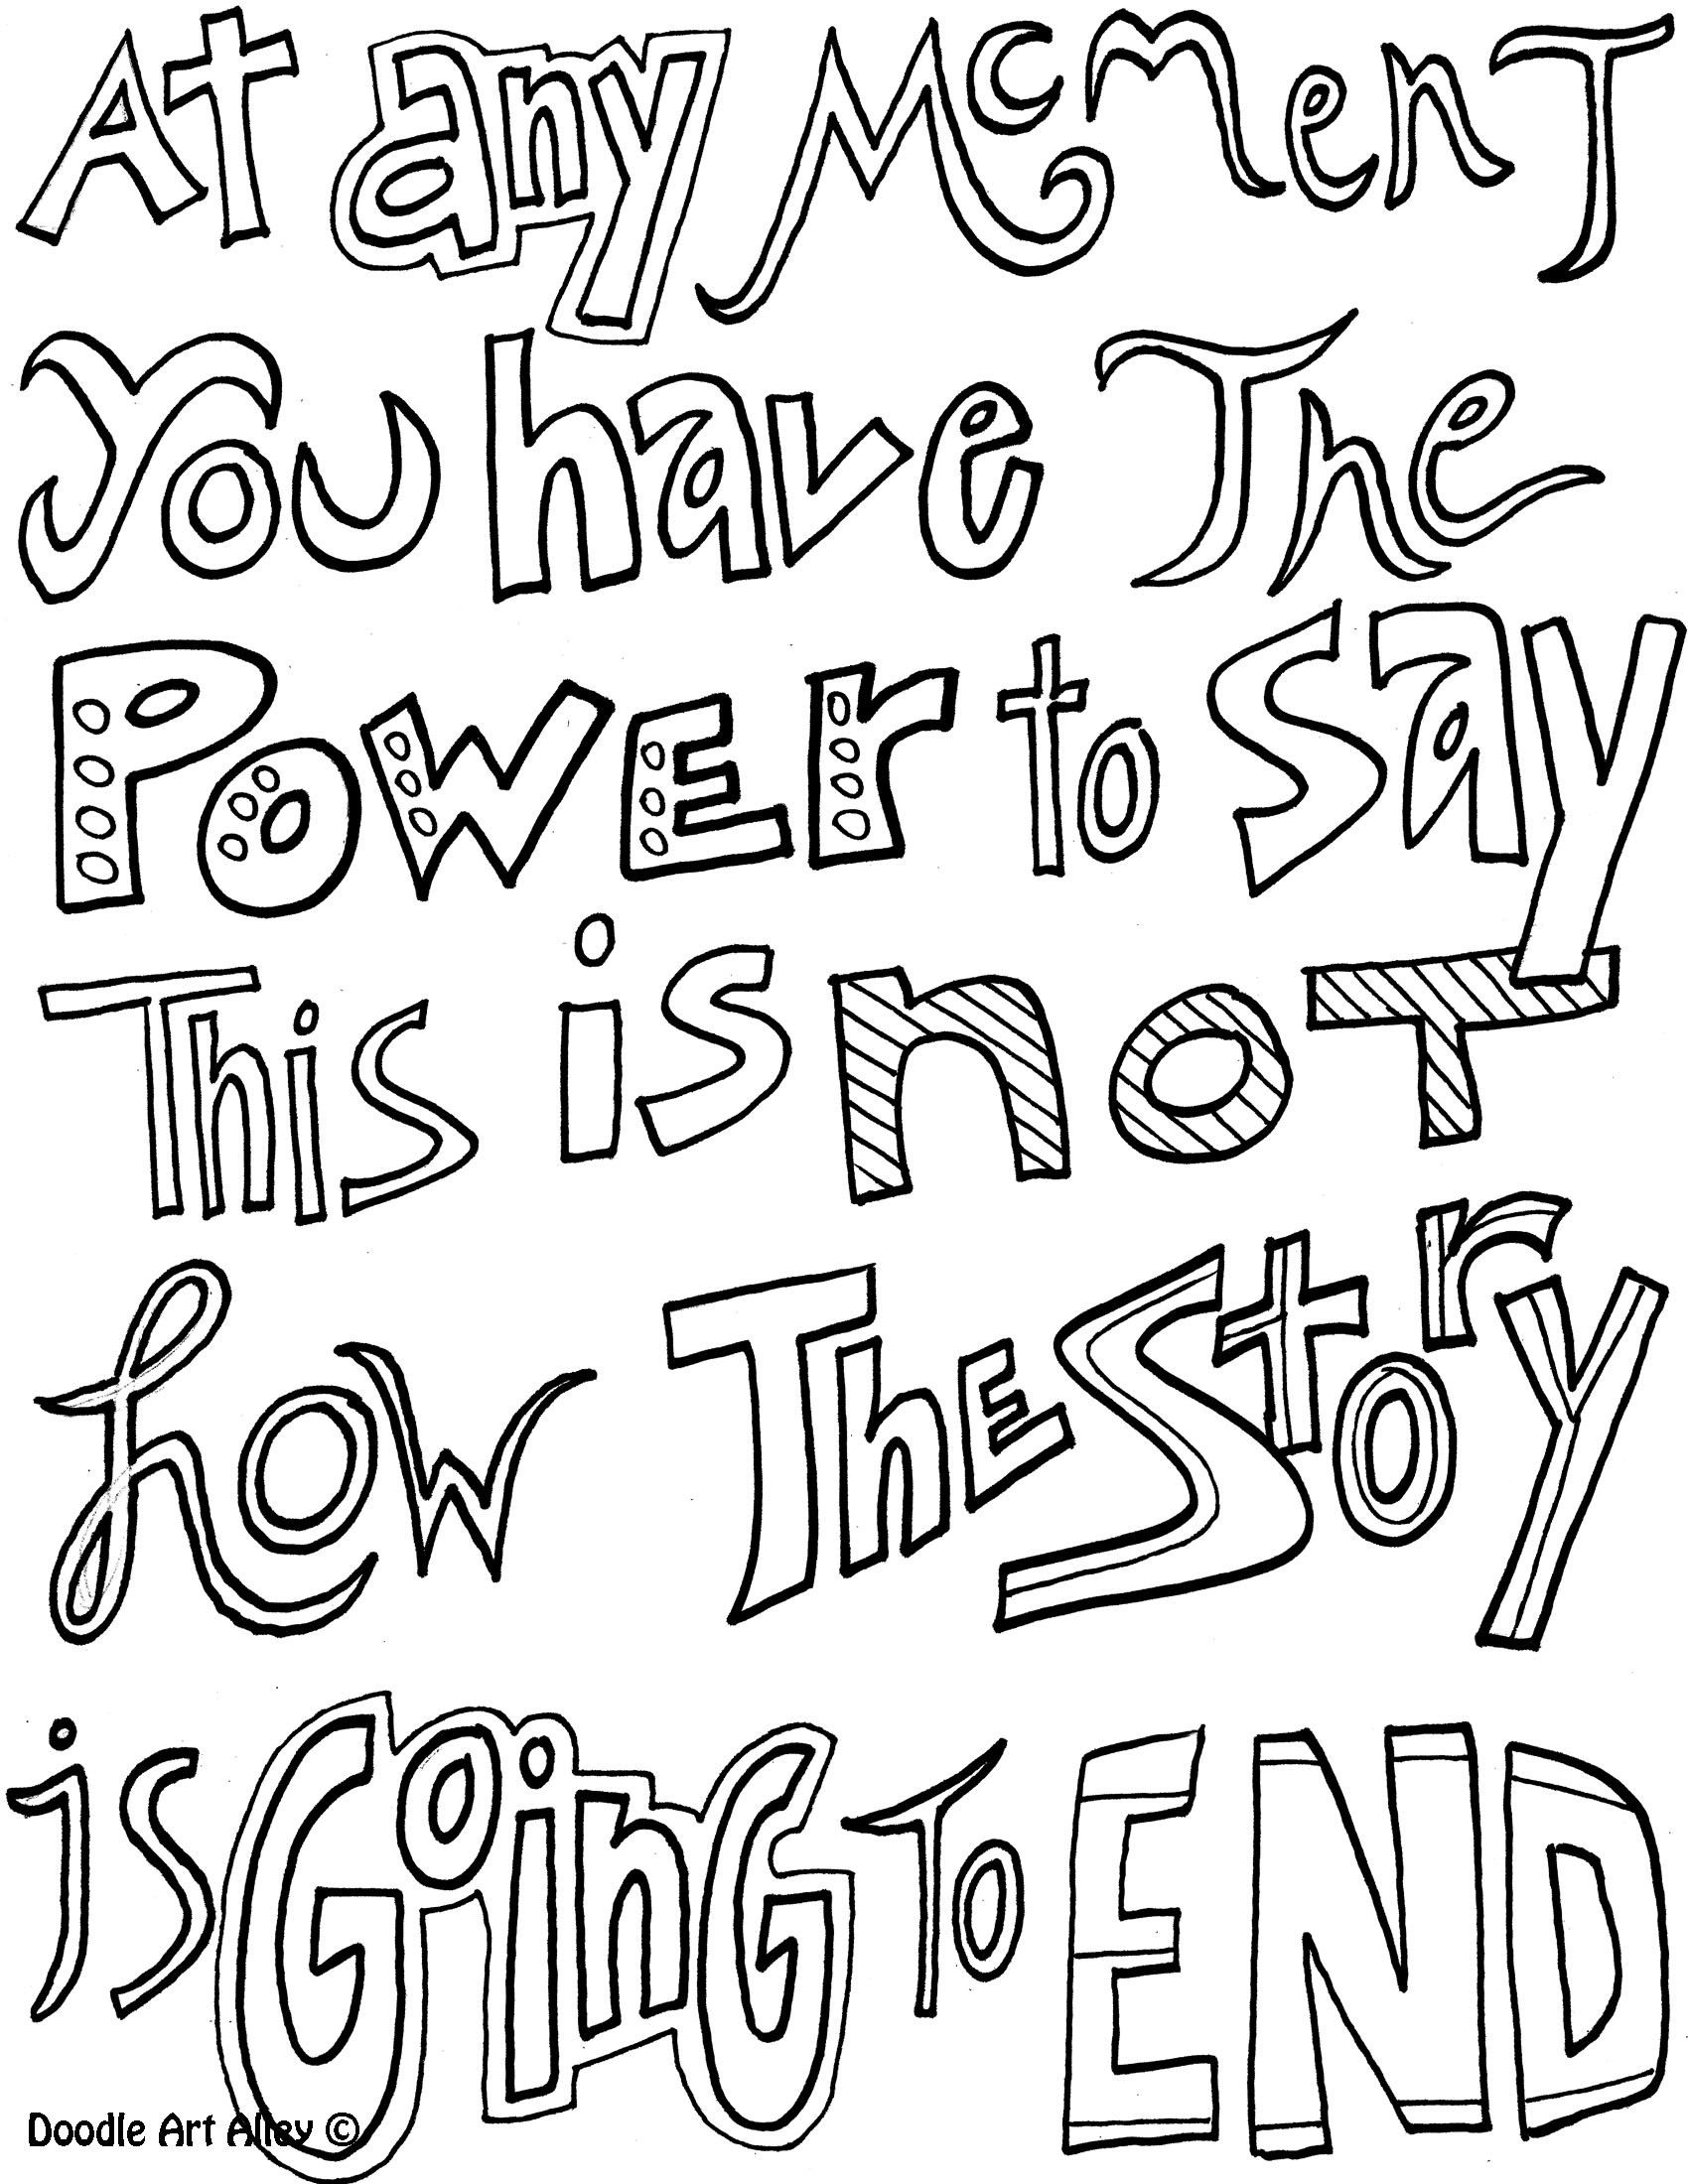 quote about colouring quote coloring pages from doodle art alley journaling quote about colouring